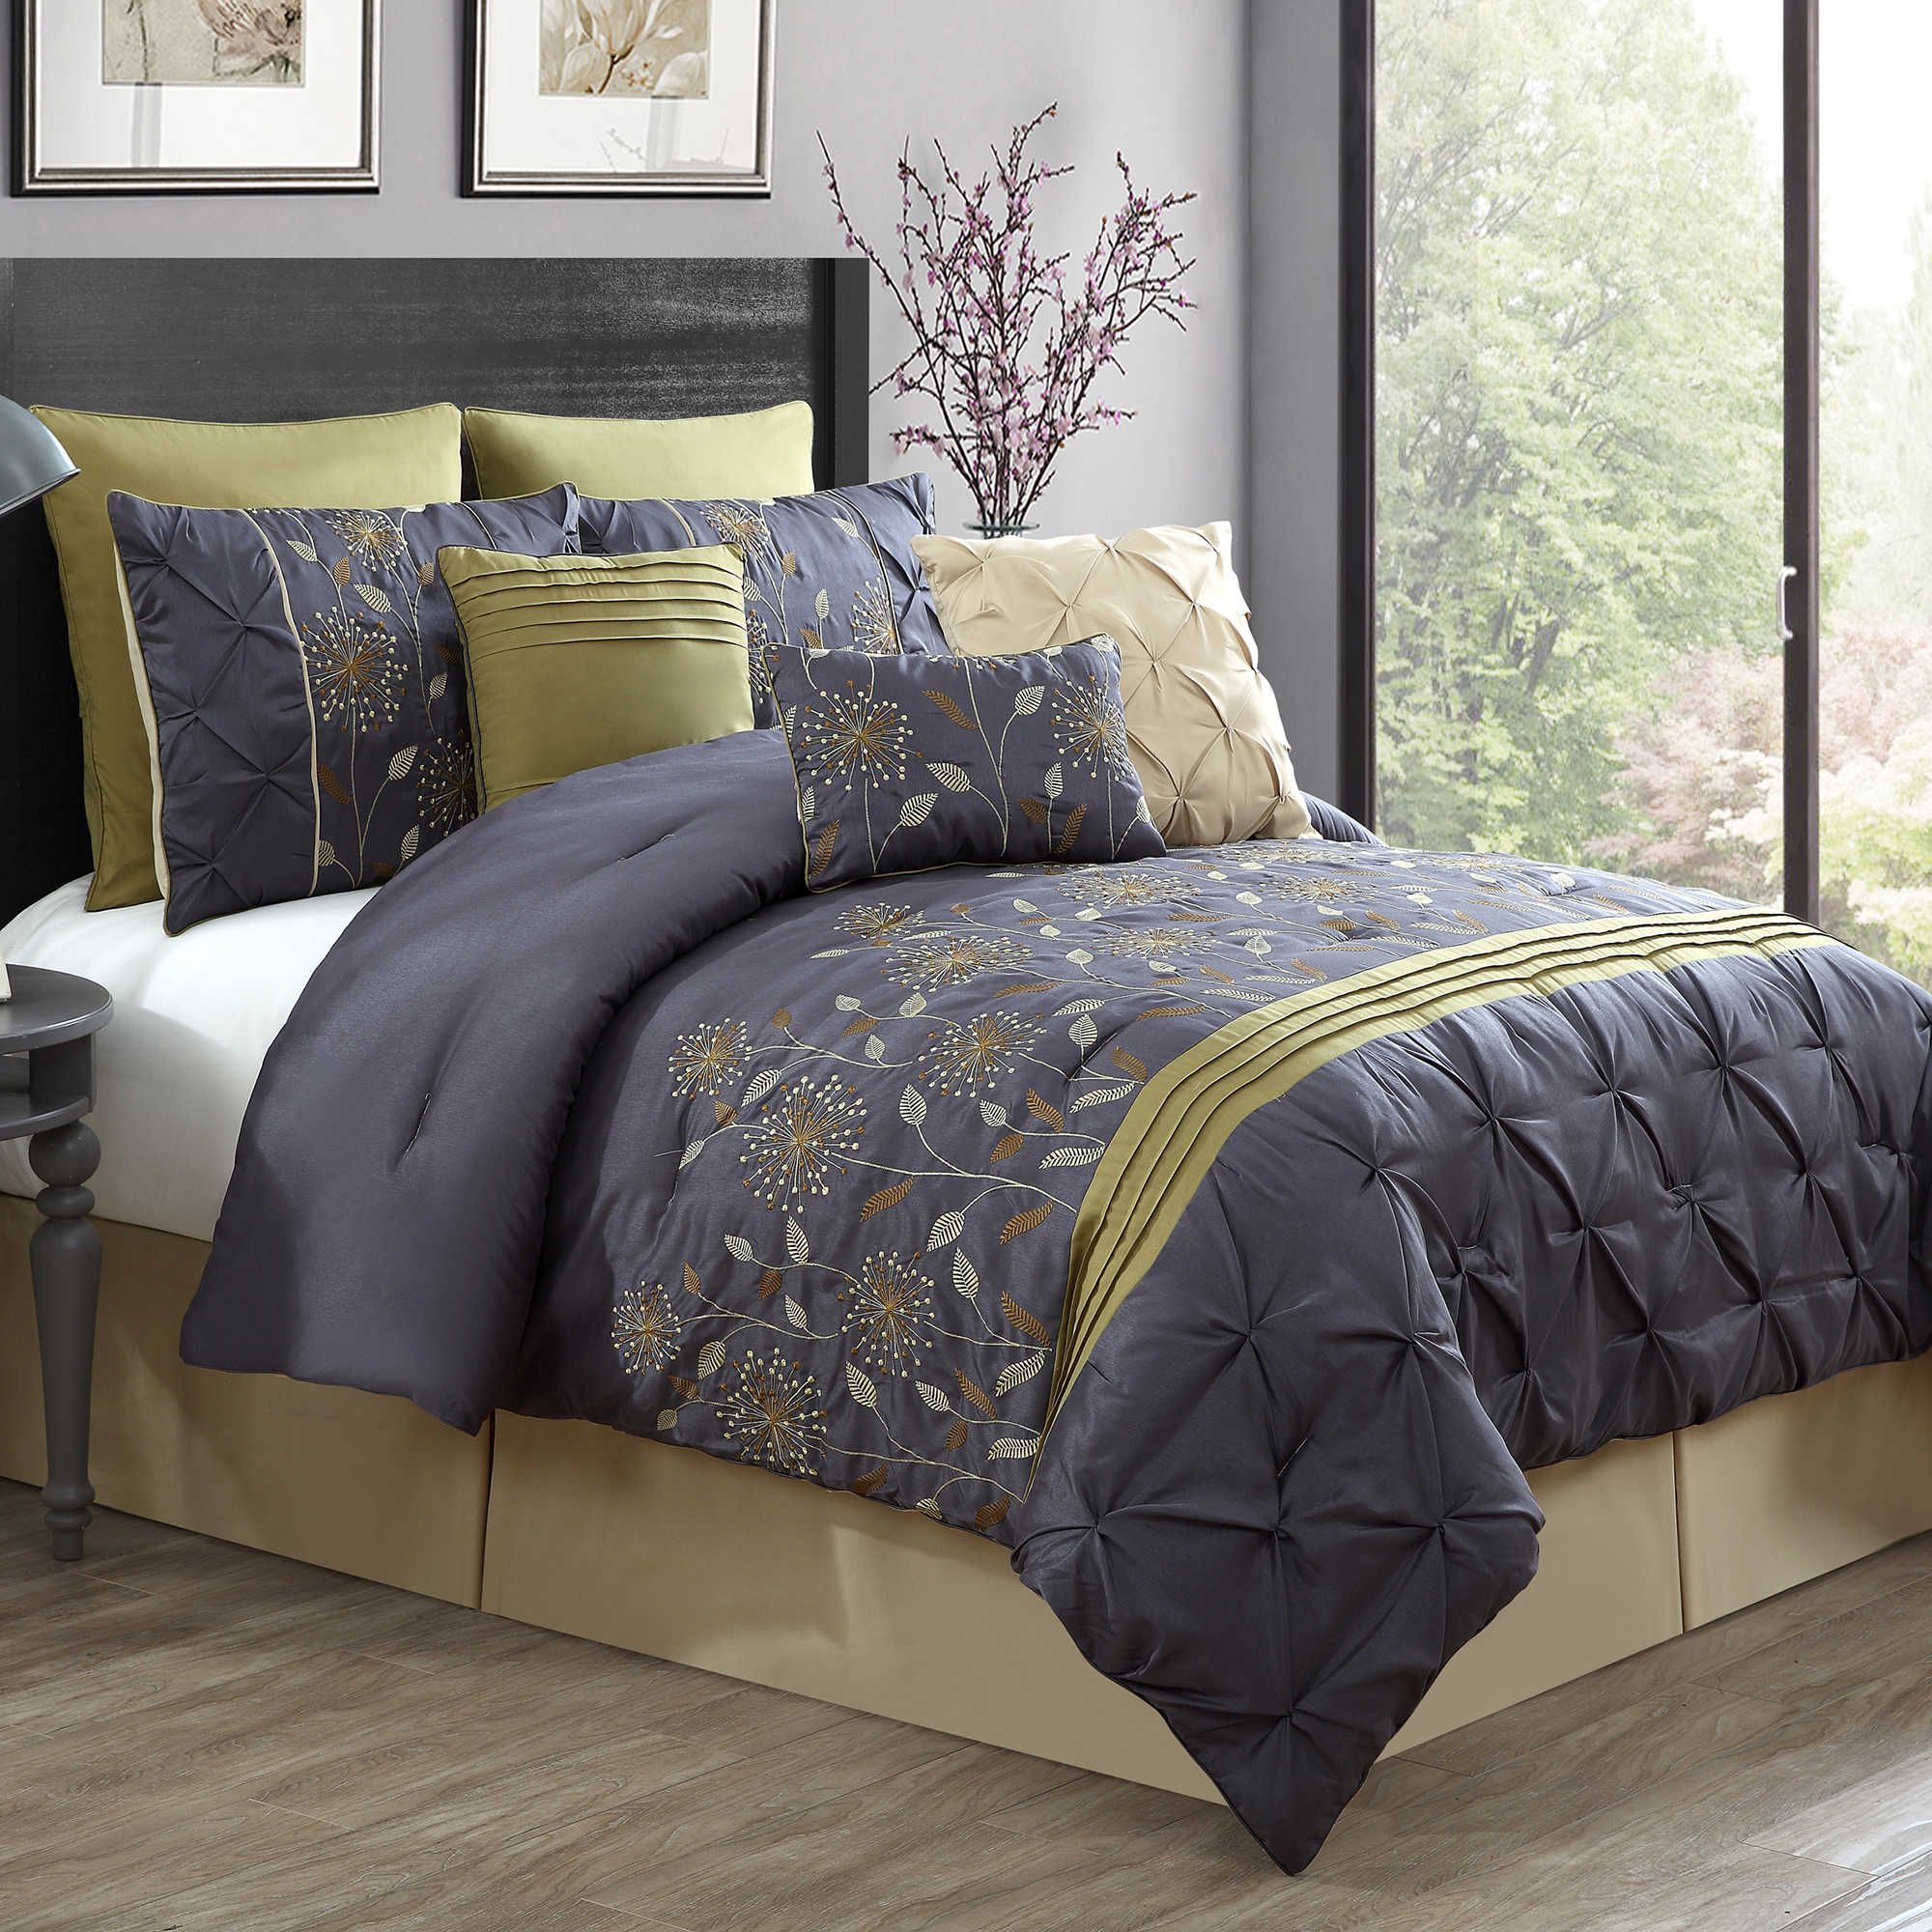 a aico nat avenuea avenue queen natural bcs piece comforter set